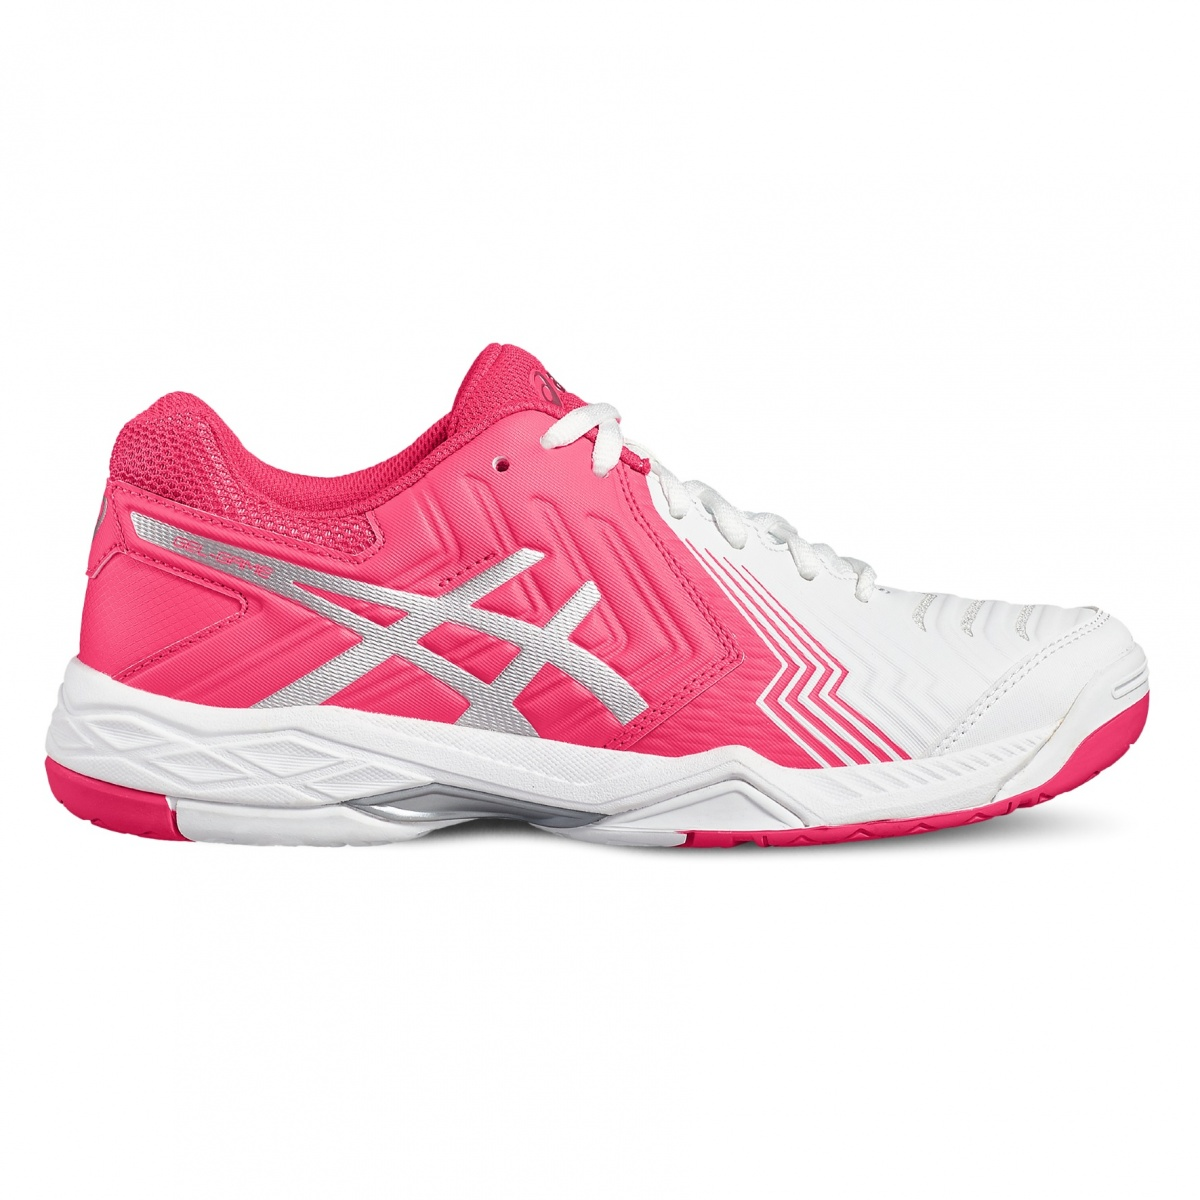 asics gel game 6 2017 weiss pink tennisschuhe damen versandkostenfrei online bestellen. Black Bedroom Furniture Sets. Home Design Ideas